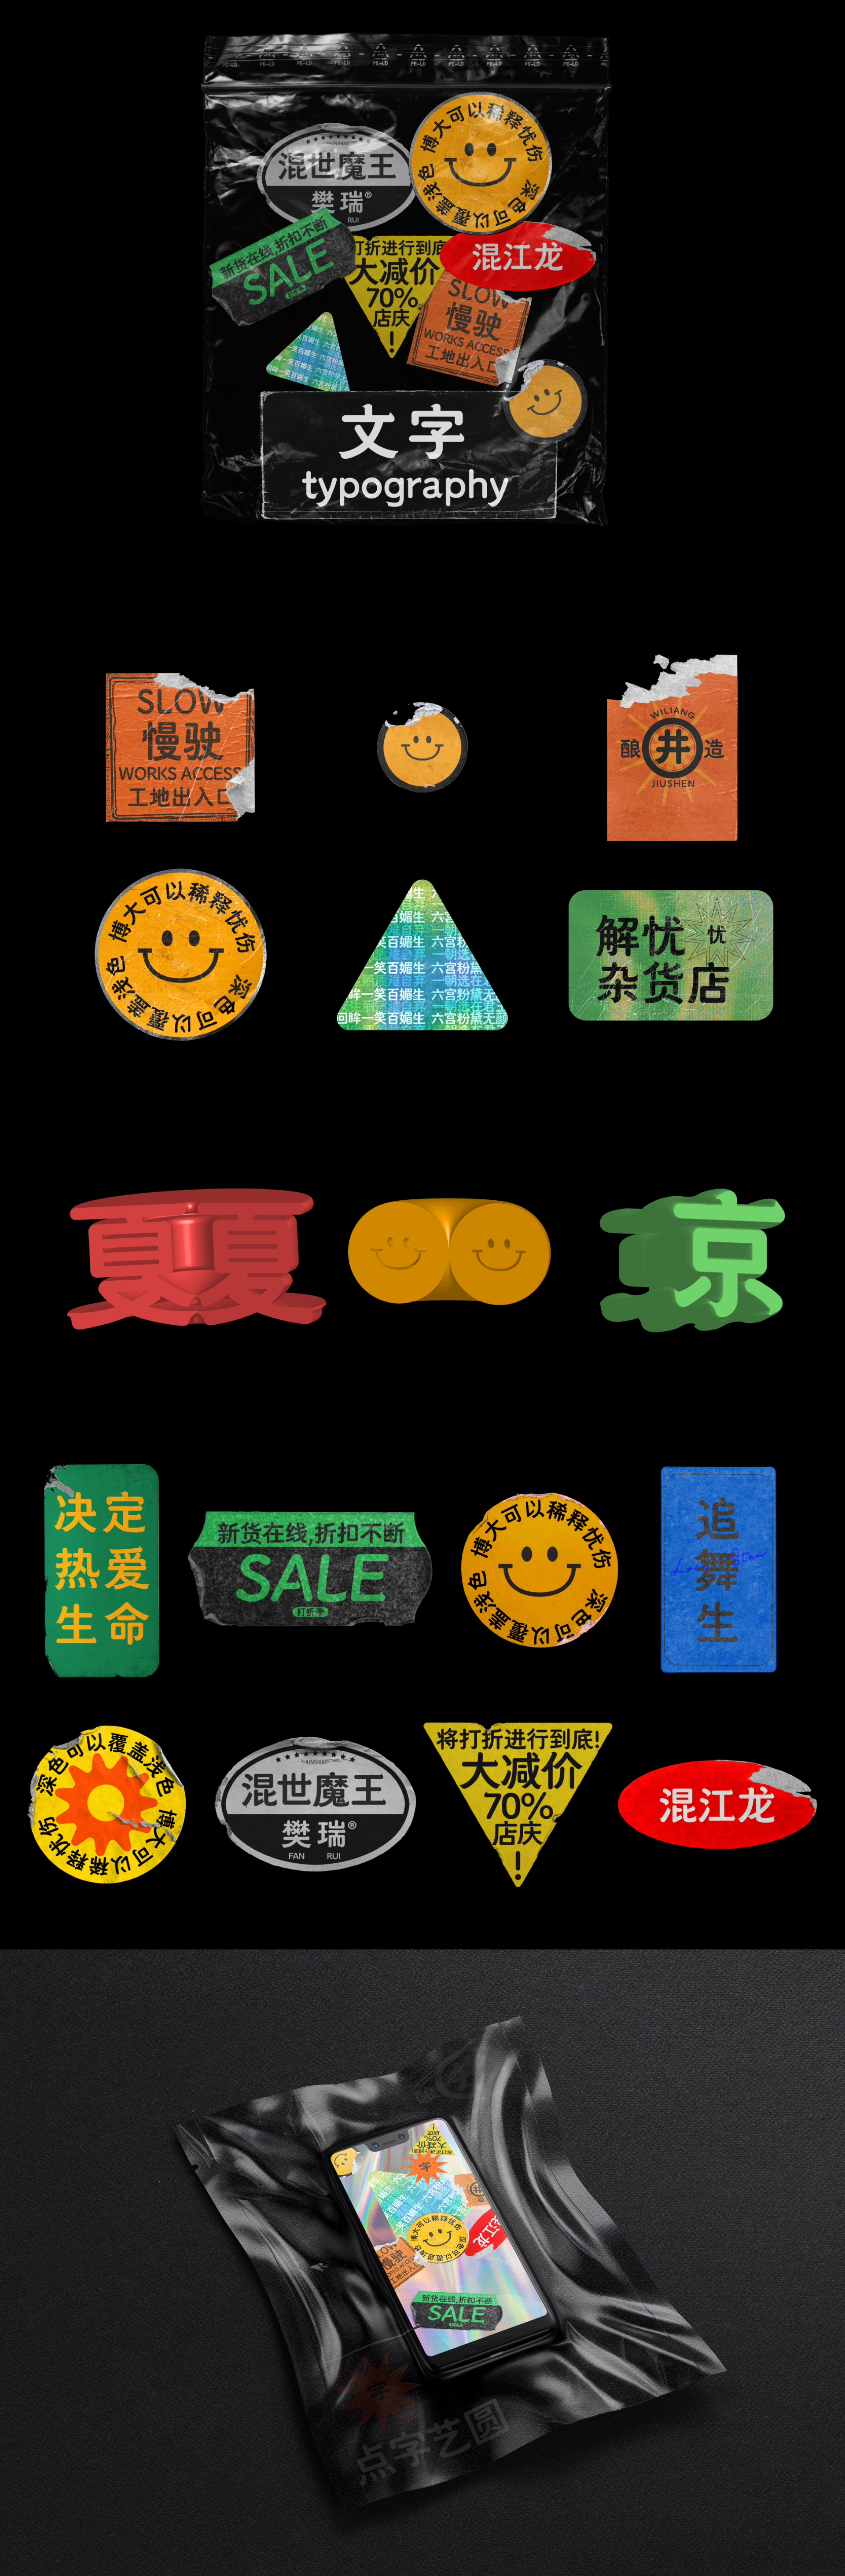 5P Collection of the latest Chinese font design schemes in 2021 #.438